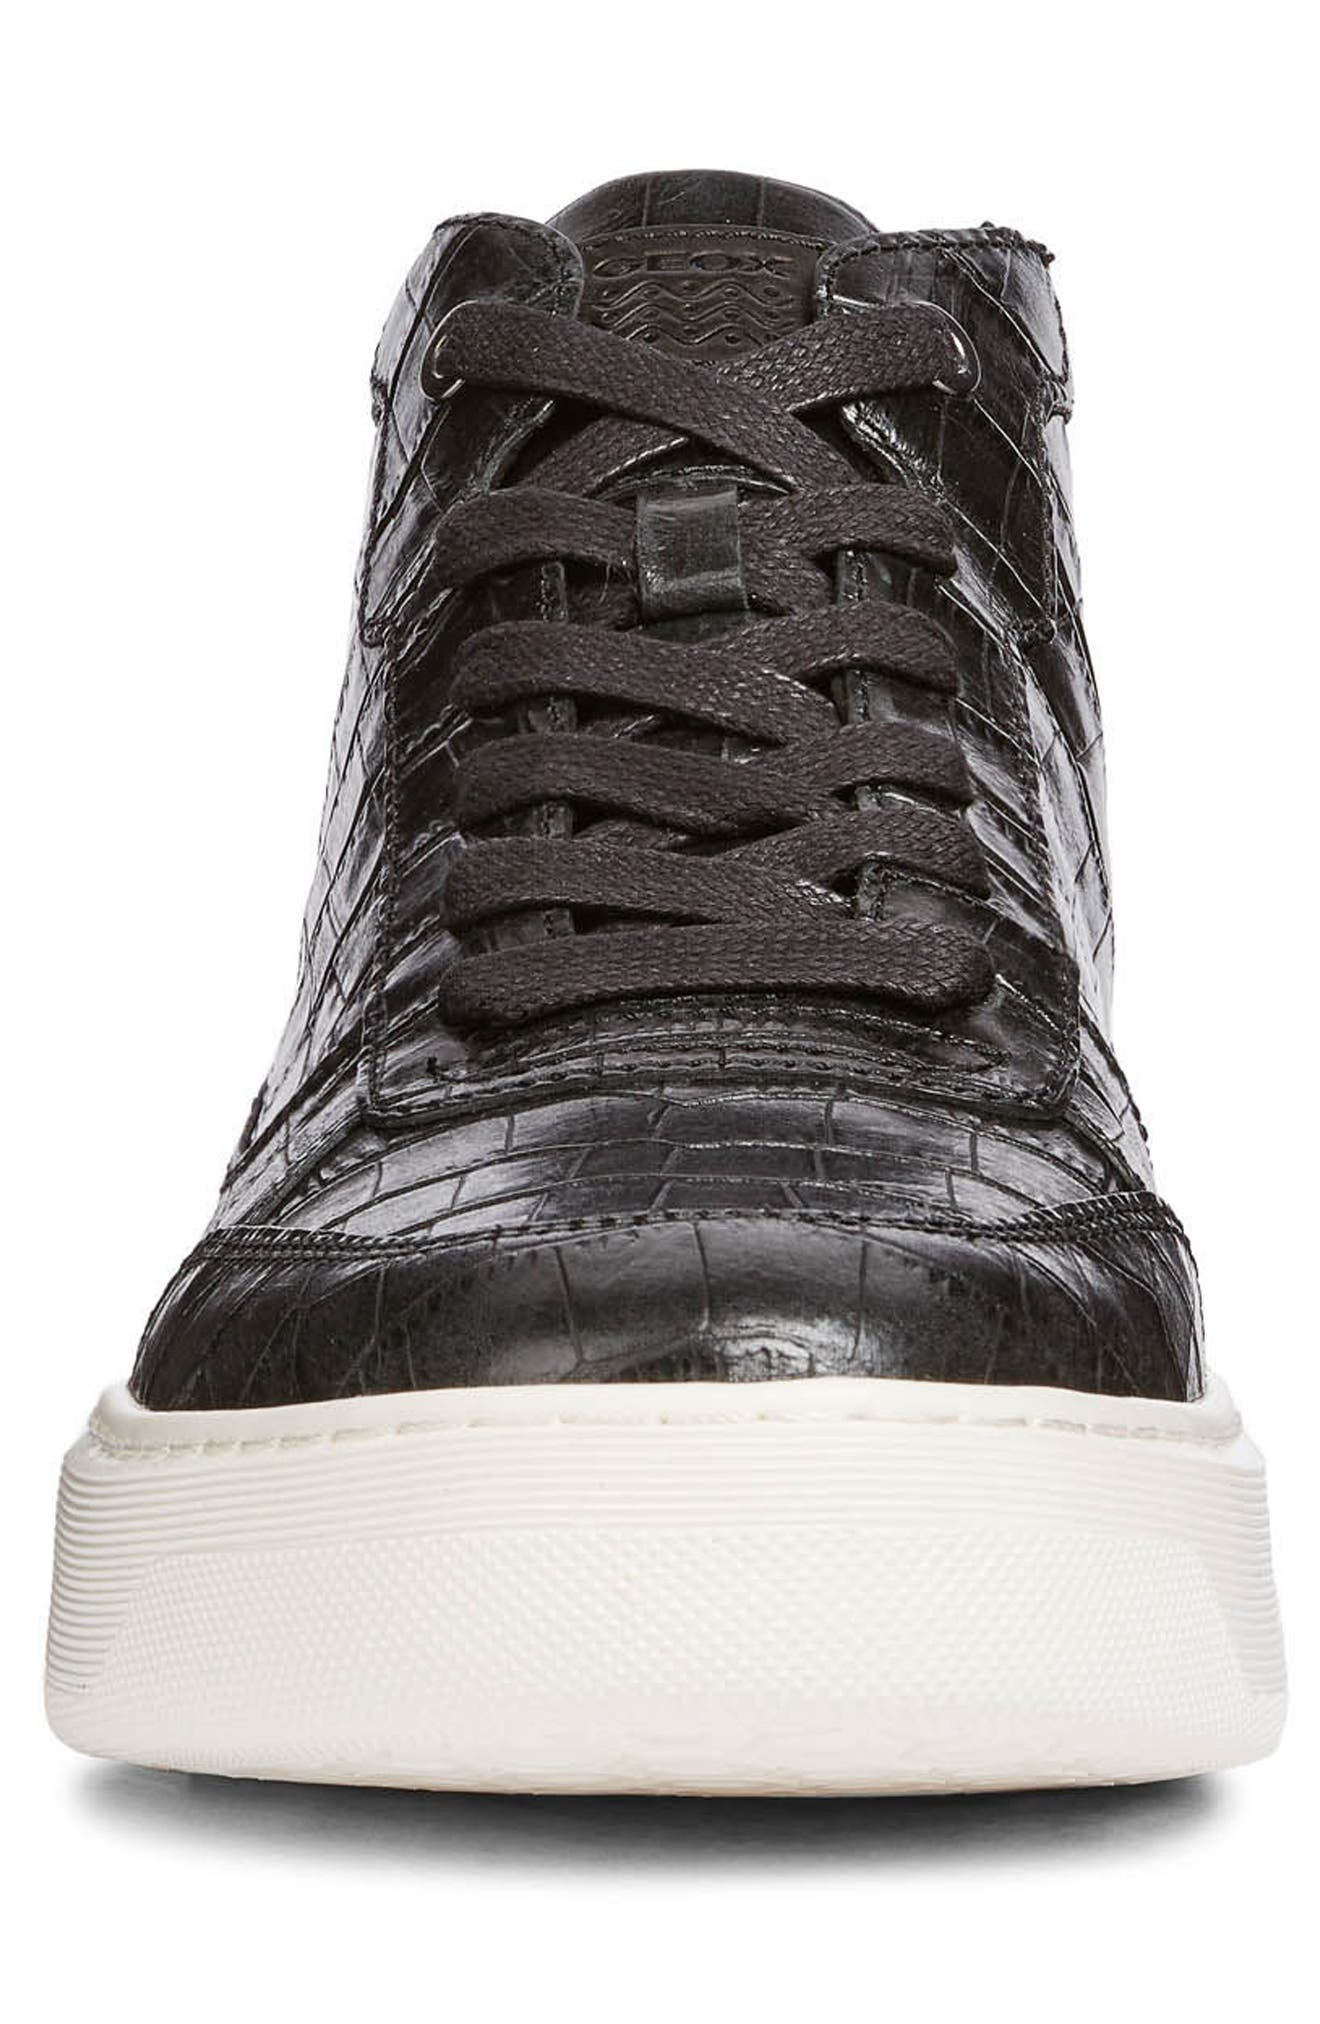 Deiven 9 High Top Sneaker,                             Alternate thumbnail 4, color,                             BLACK LEATHER